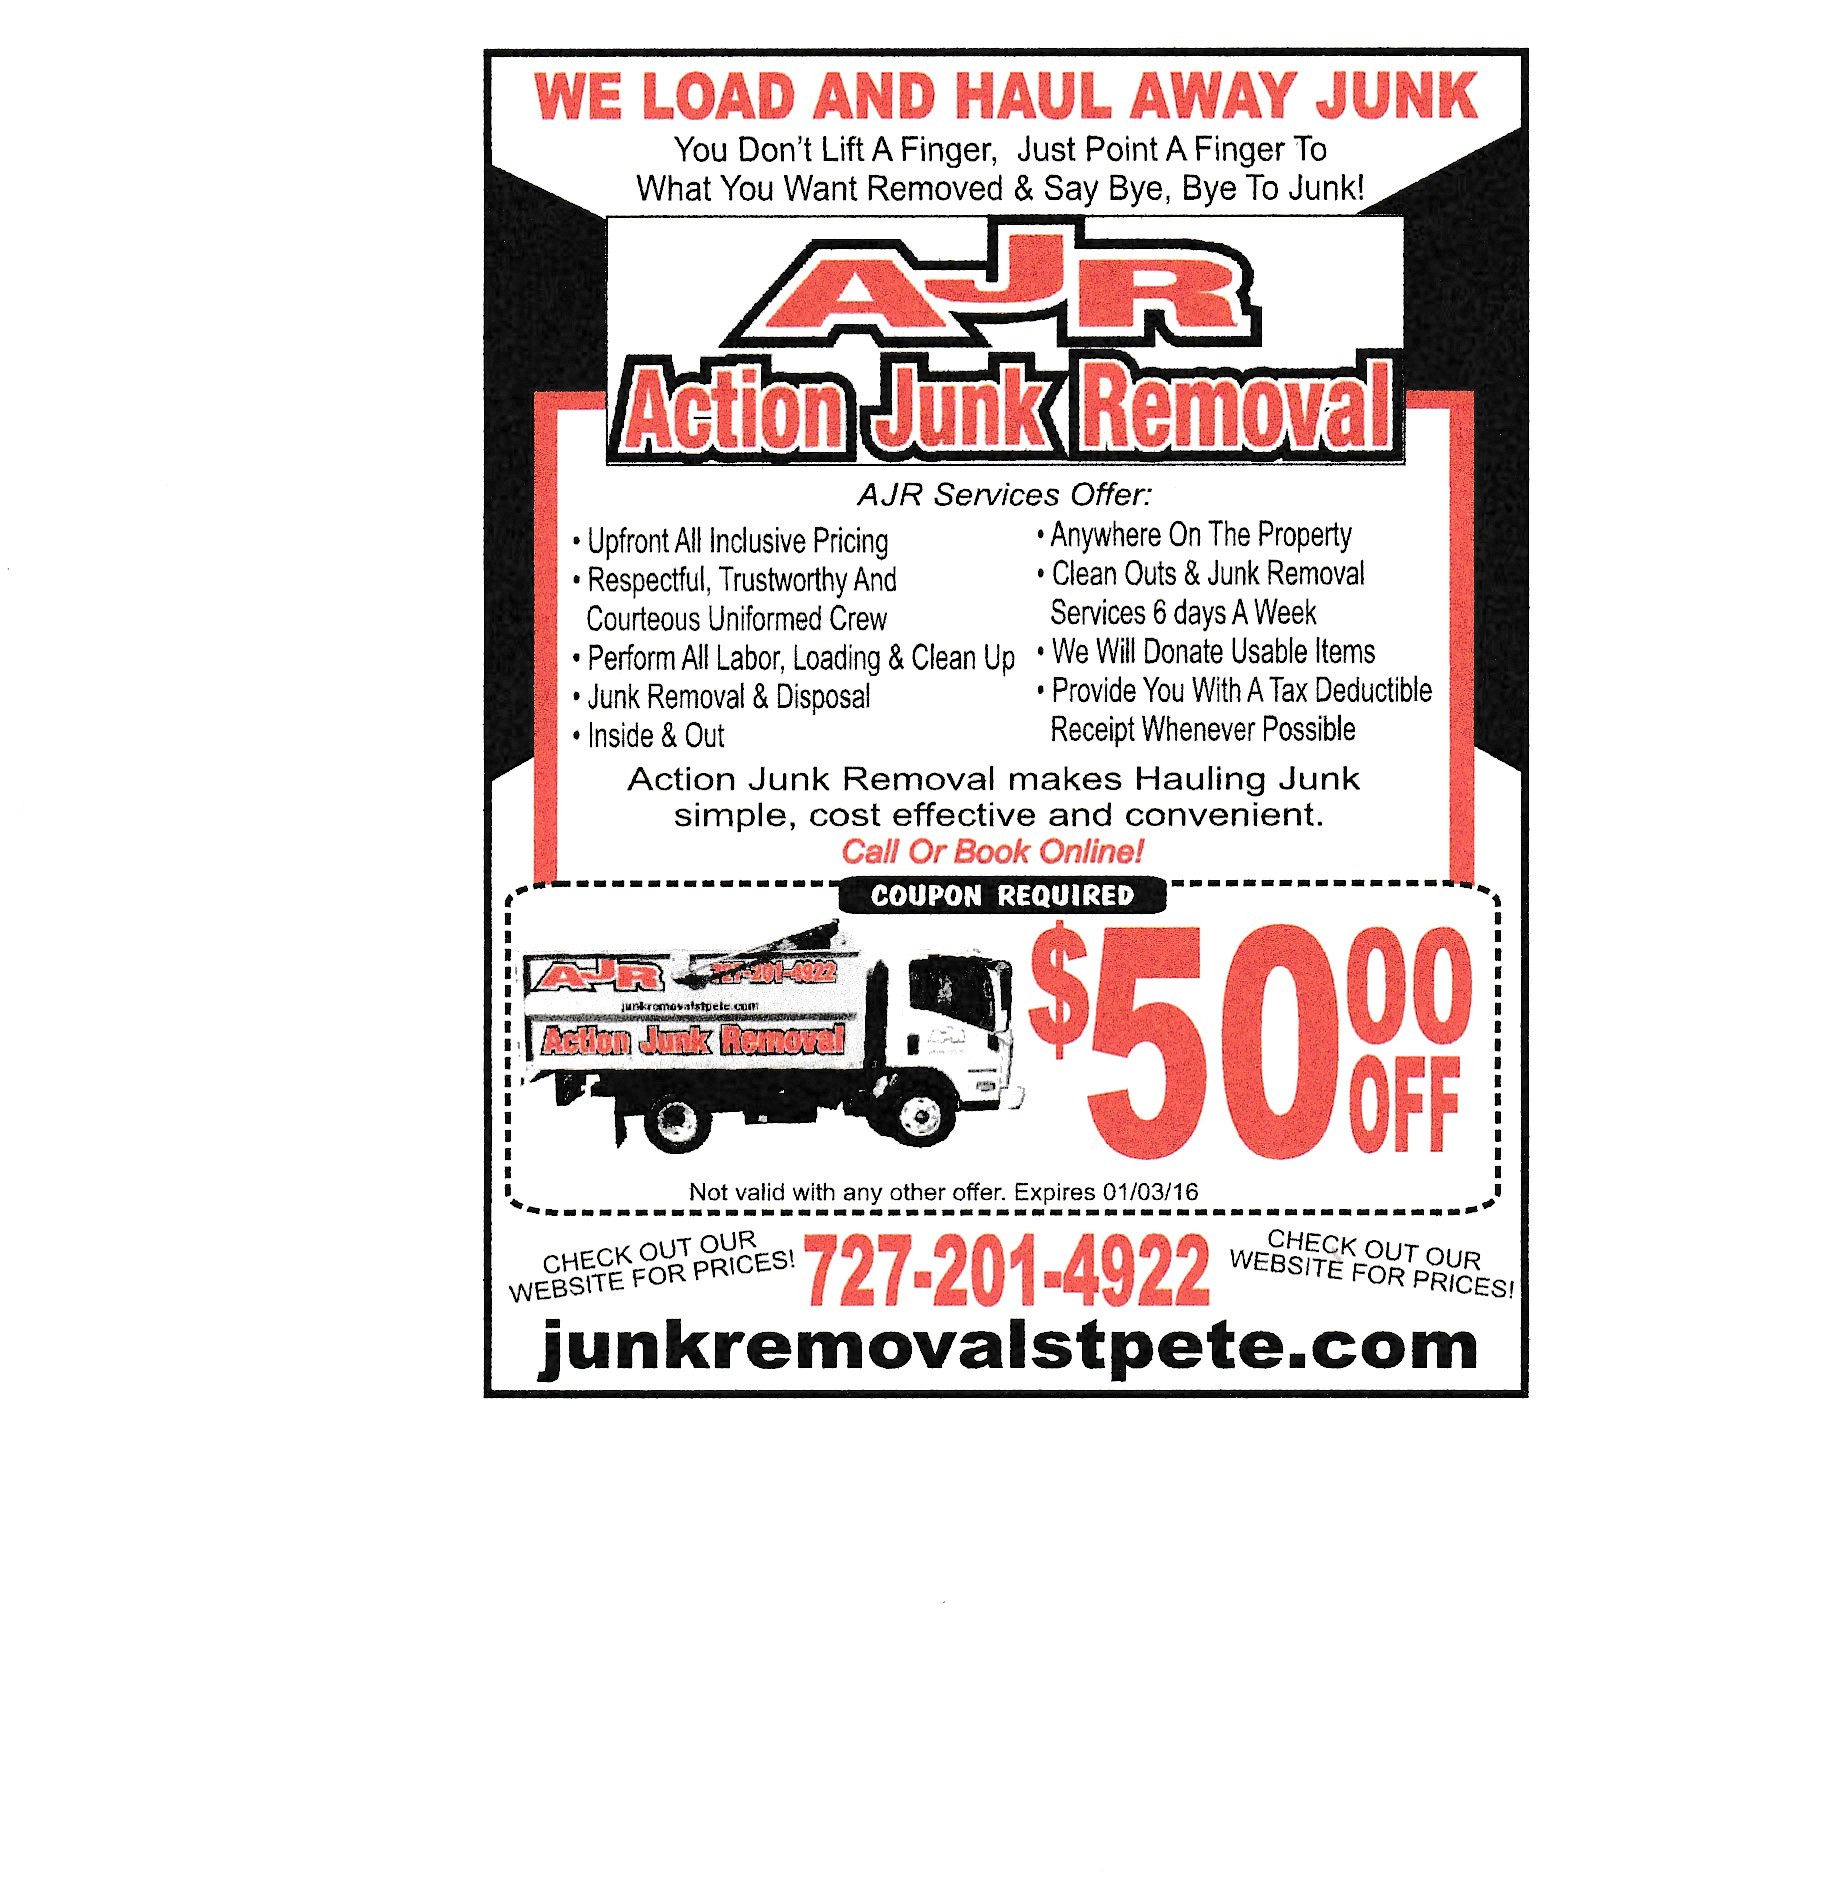 Action Junk Removal | junk removal St. Petersburg | 727-201-4922 Save